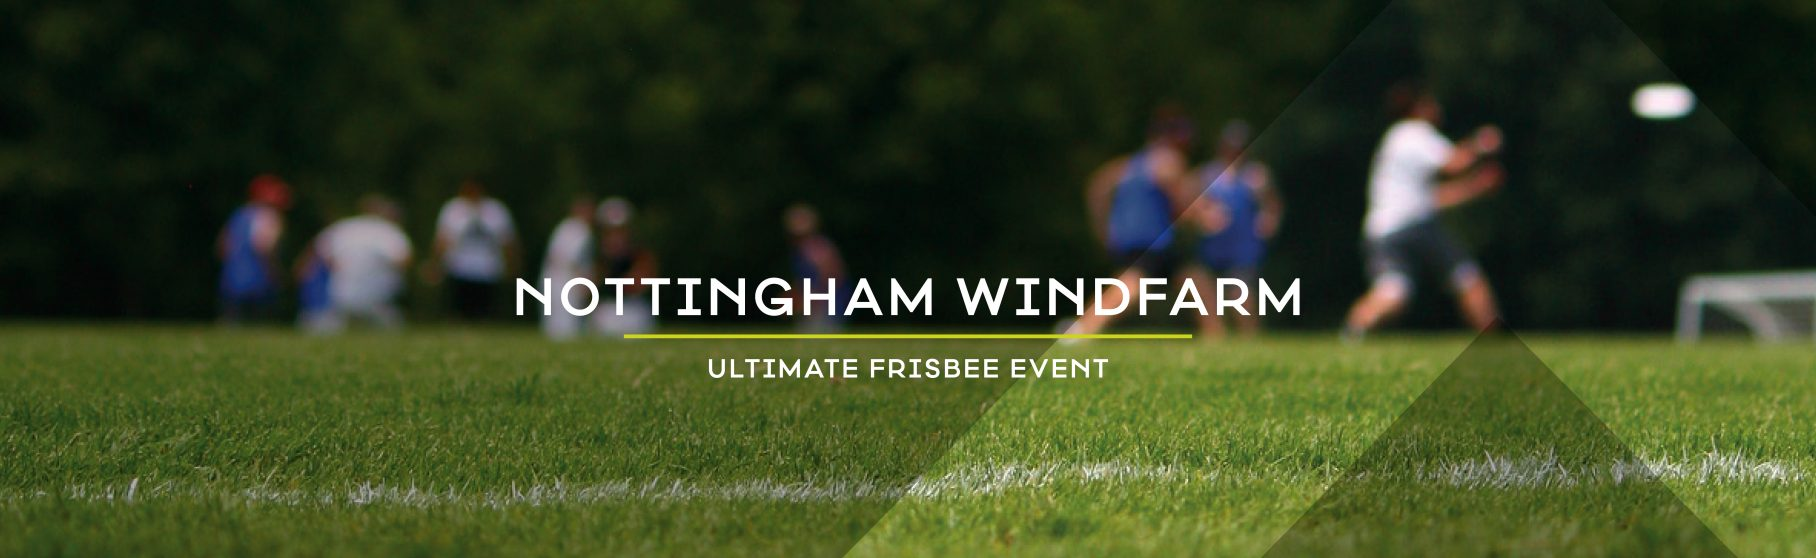 Nottingham Windfarm Ultimate Frisbee